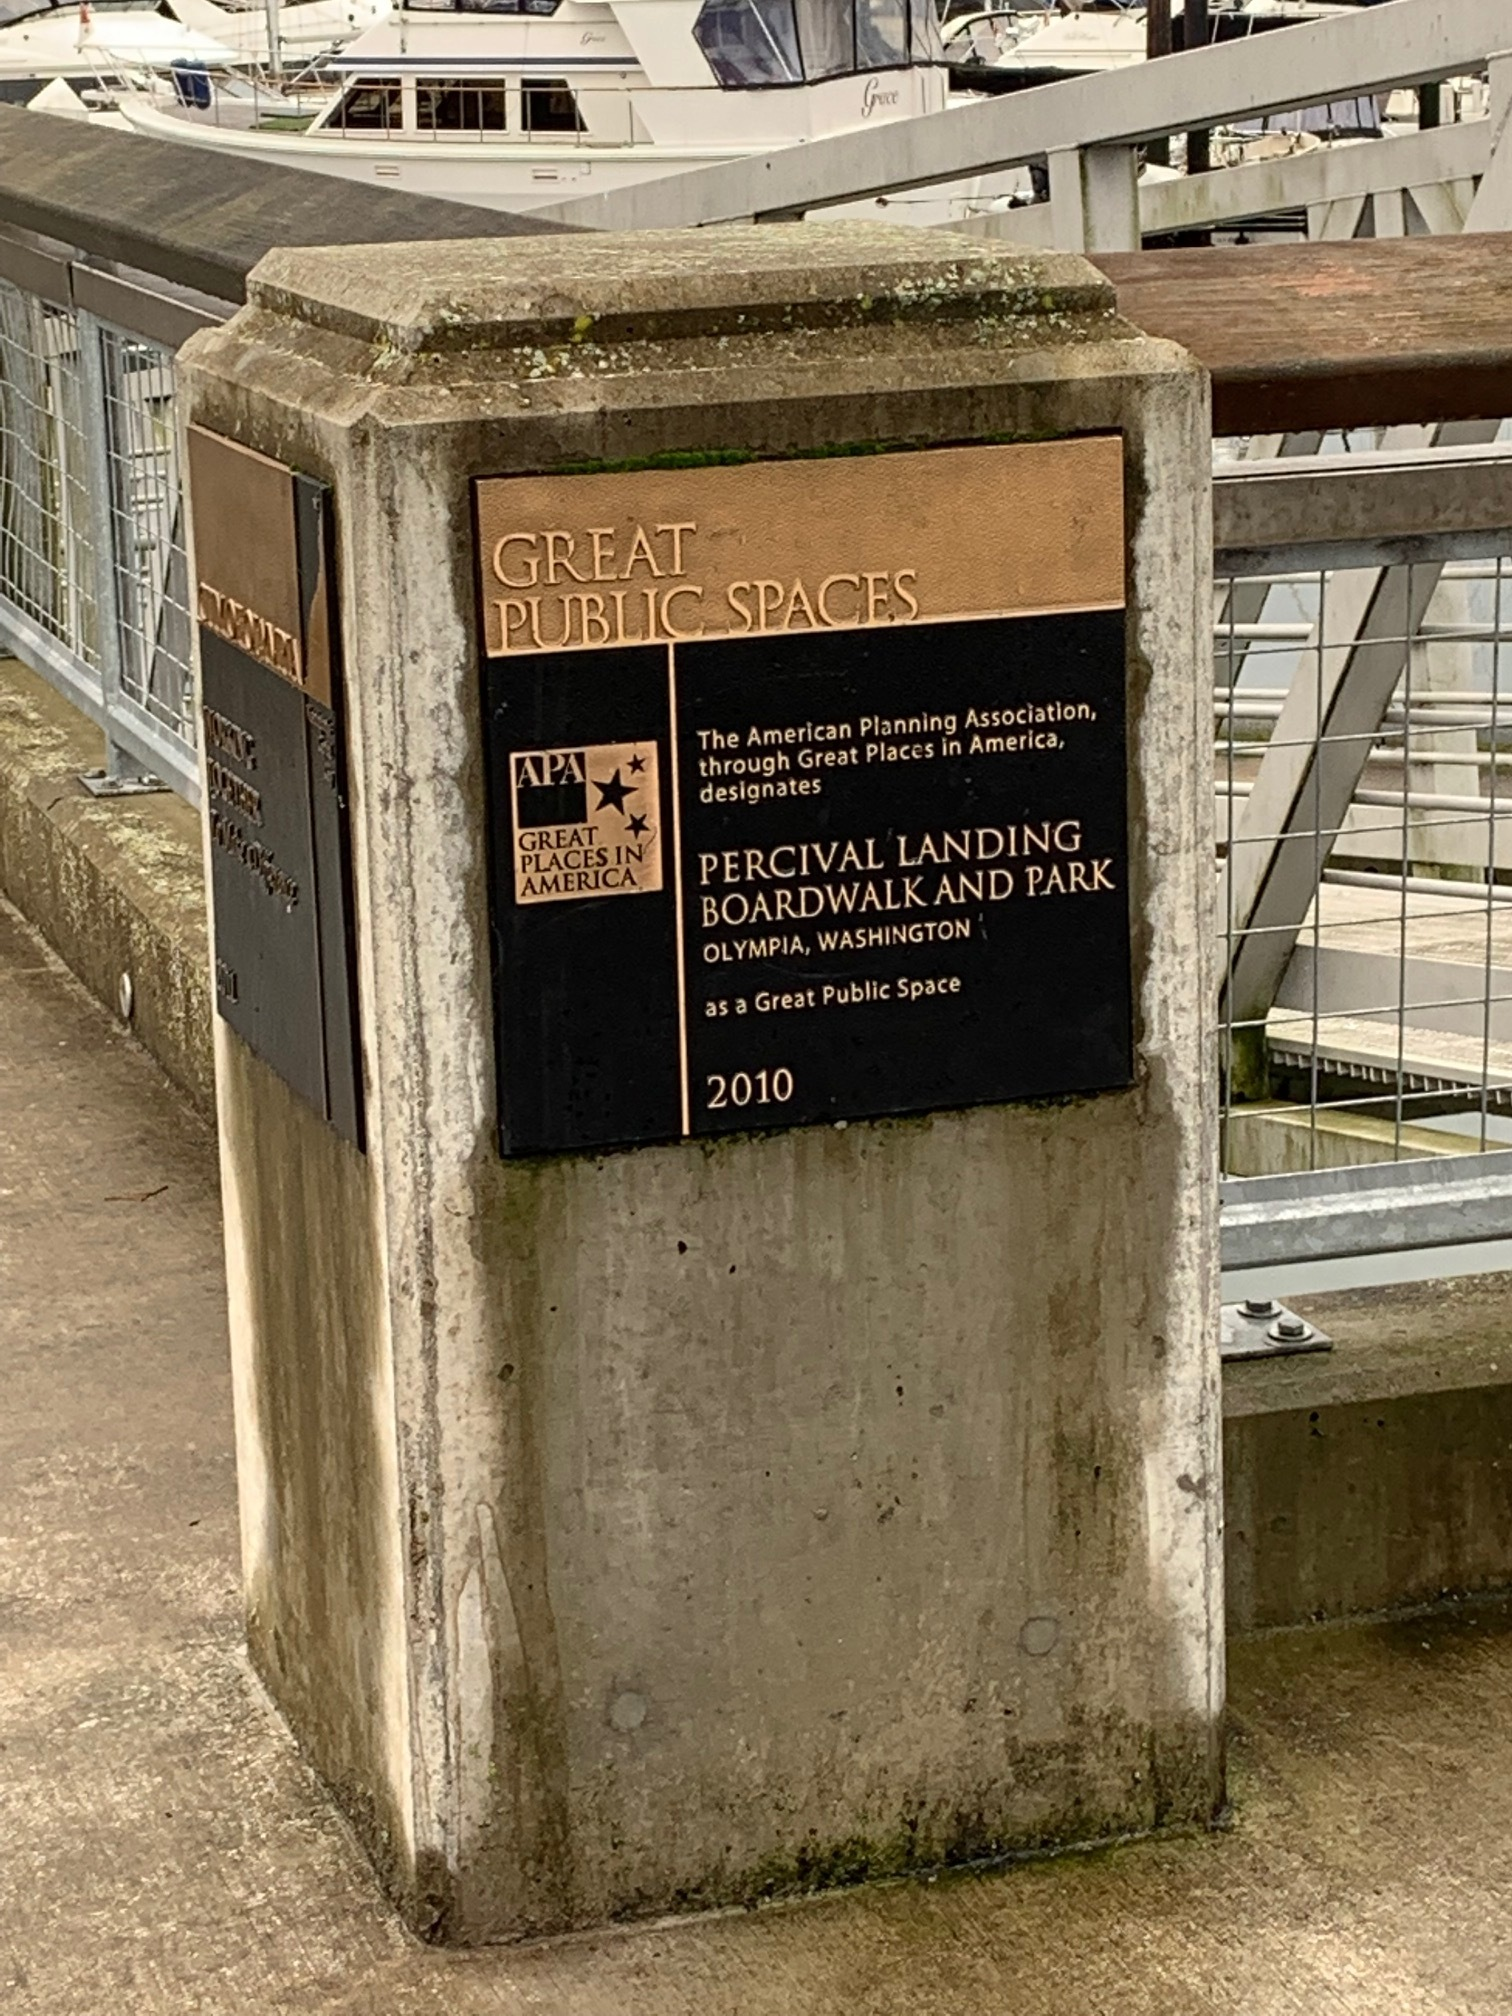 Plaque commemorating APA's Great Places in America award given to the City for Percival Landing in 2010: Courtesy - Candi Millar